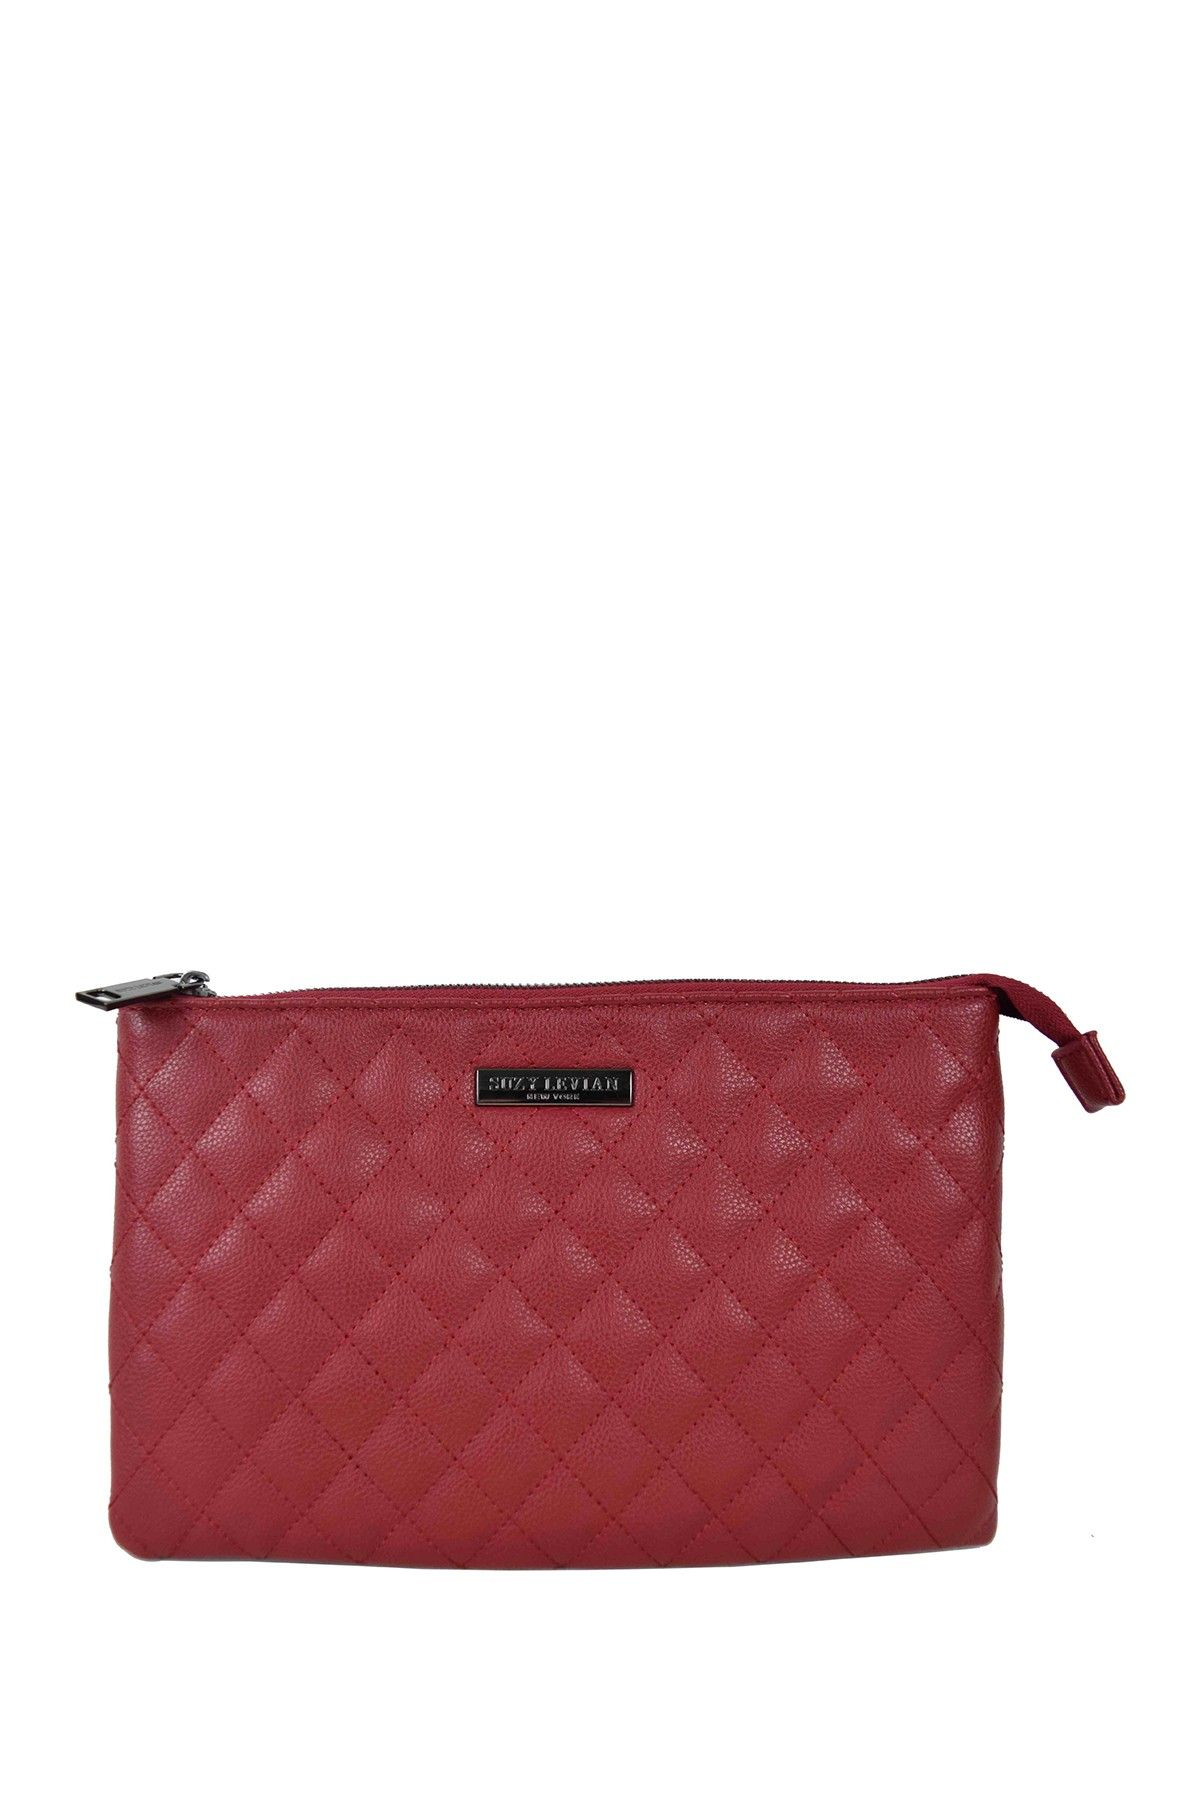 Suzy Levian   Medium Faux Leather Quilted Clutch   Nordstrom Rack #nordstromrack